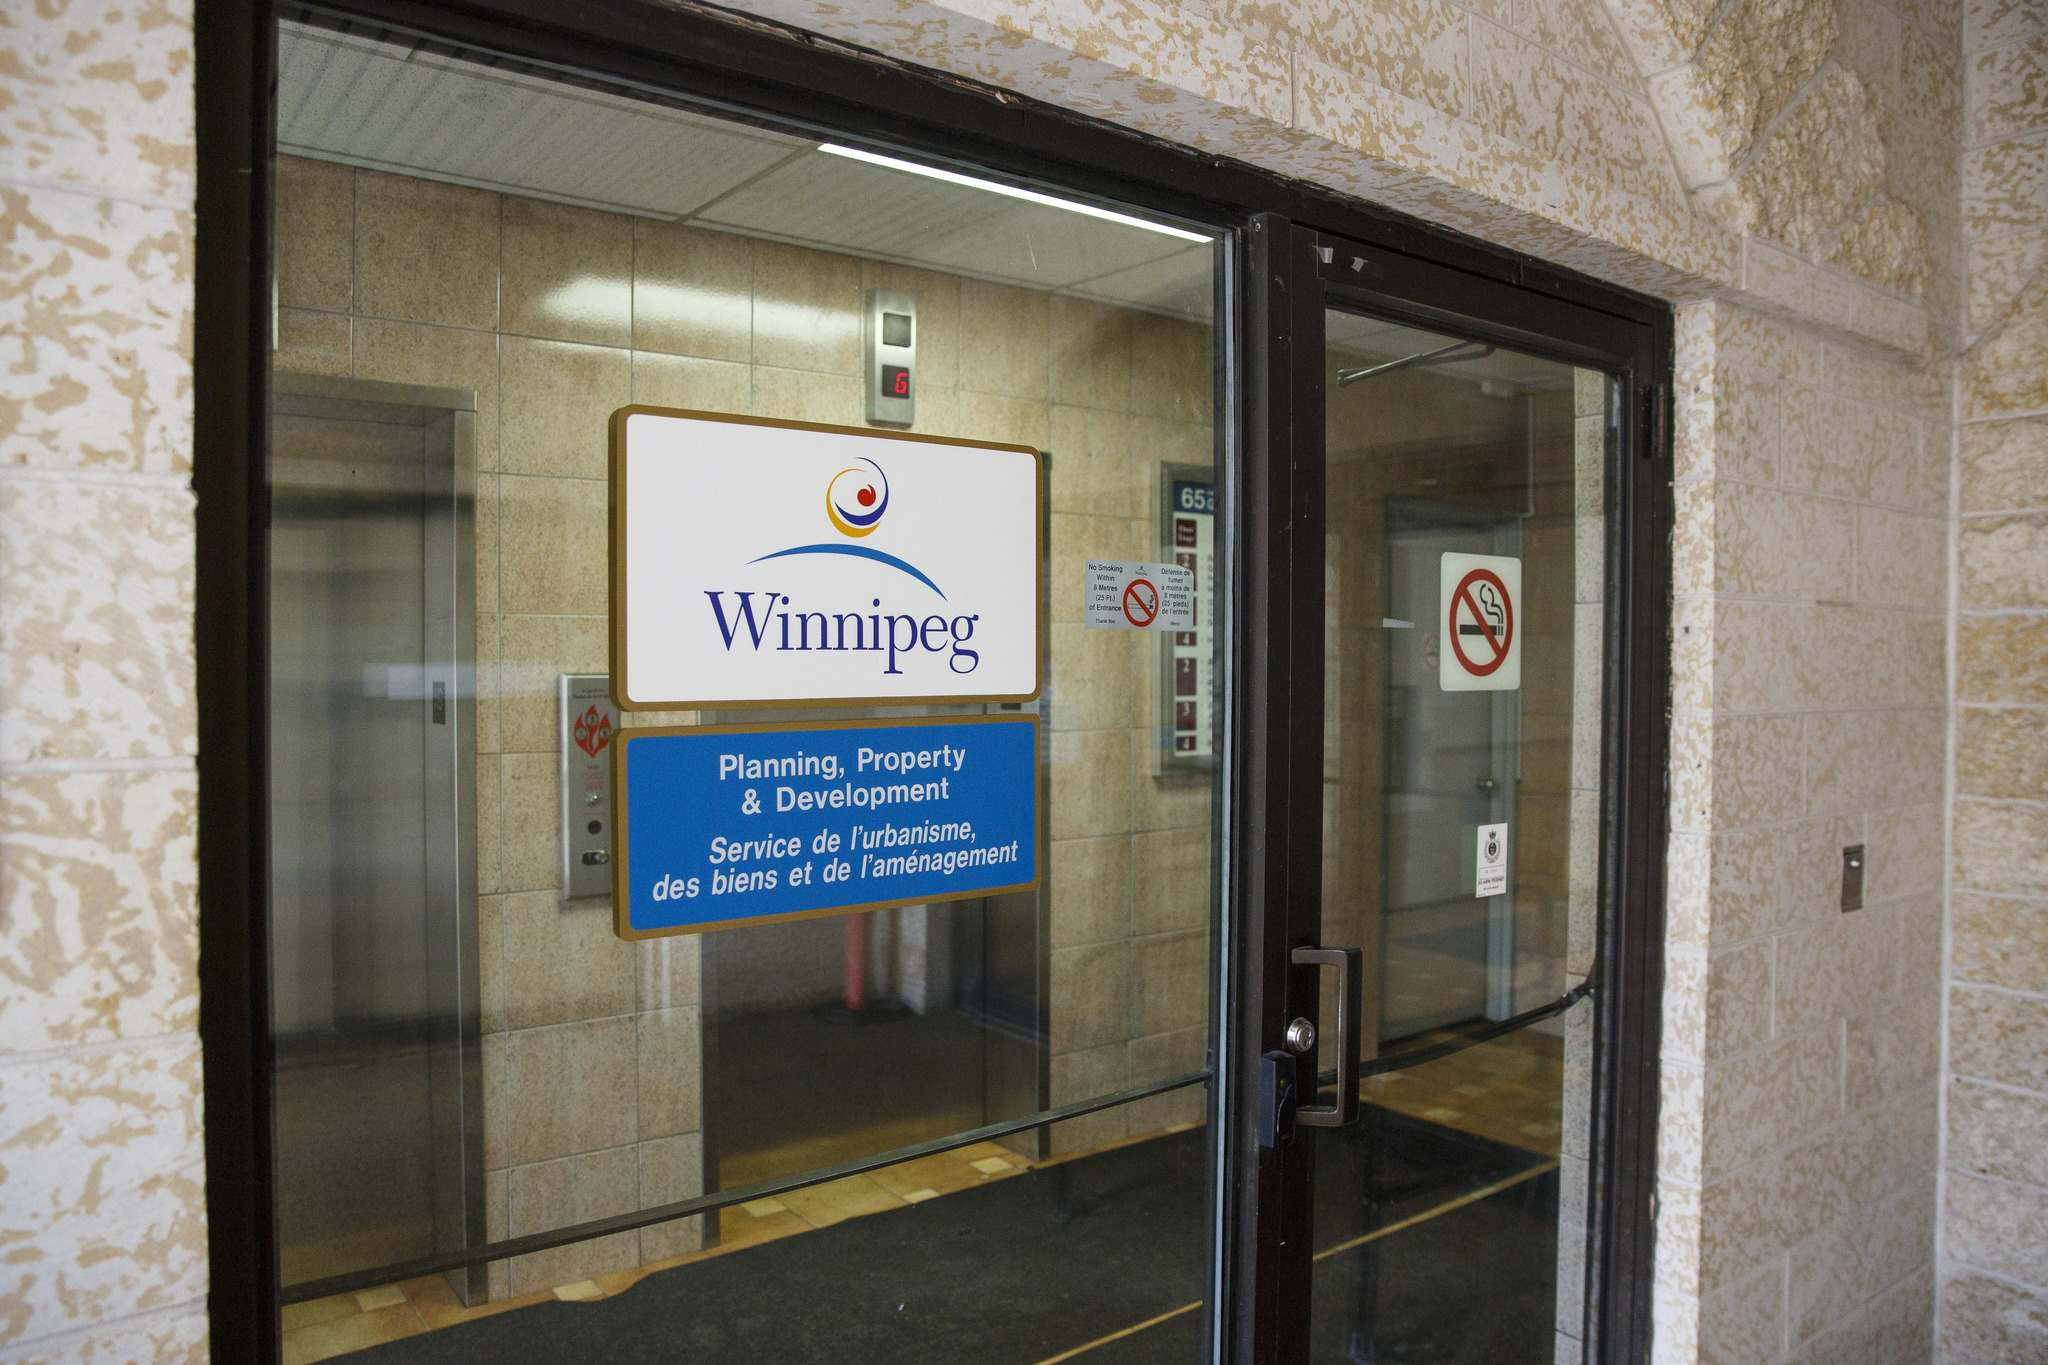 MIKE DEAL / WINNIPEG FREE PRESS FILES</p><p>The City of Winnipeg Planning Property and Development offices at 65 Garry Street.</p>